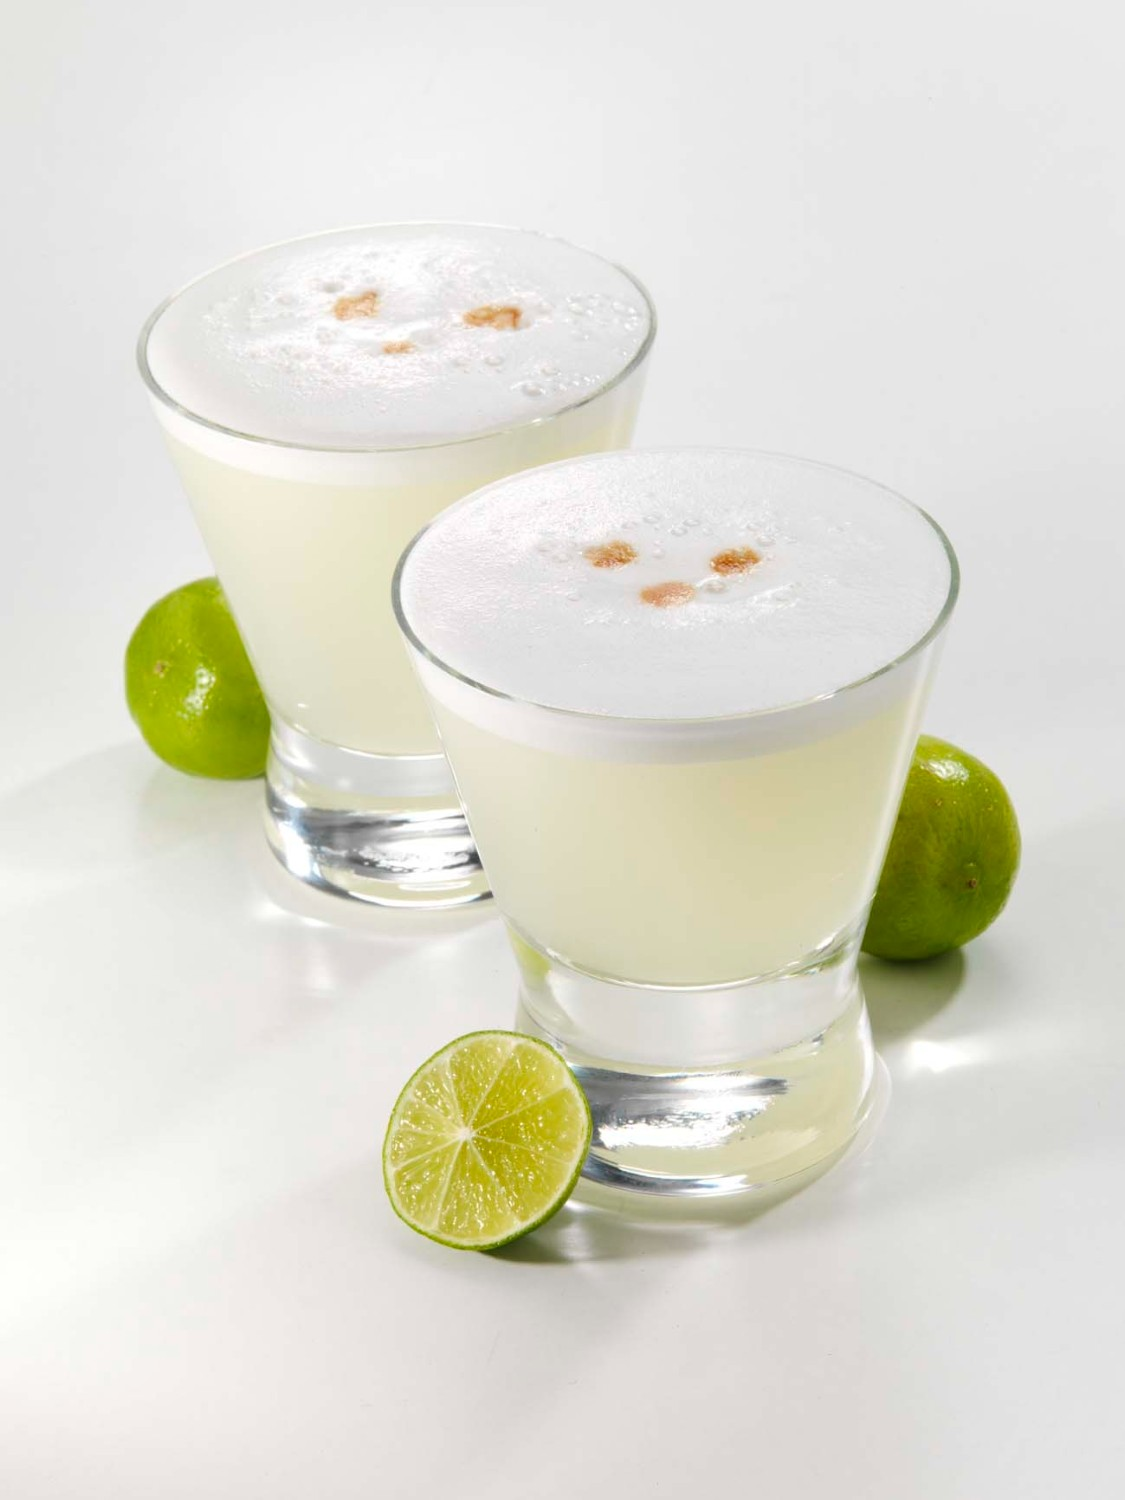 Pisco Sour cocktail from Peru